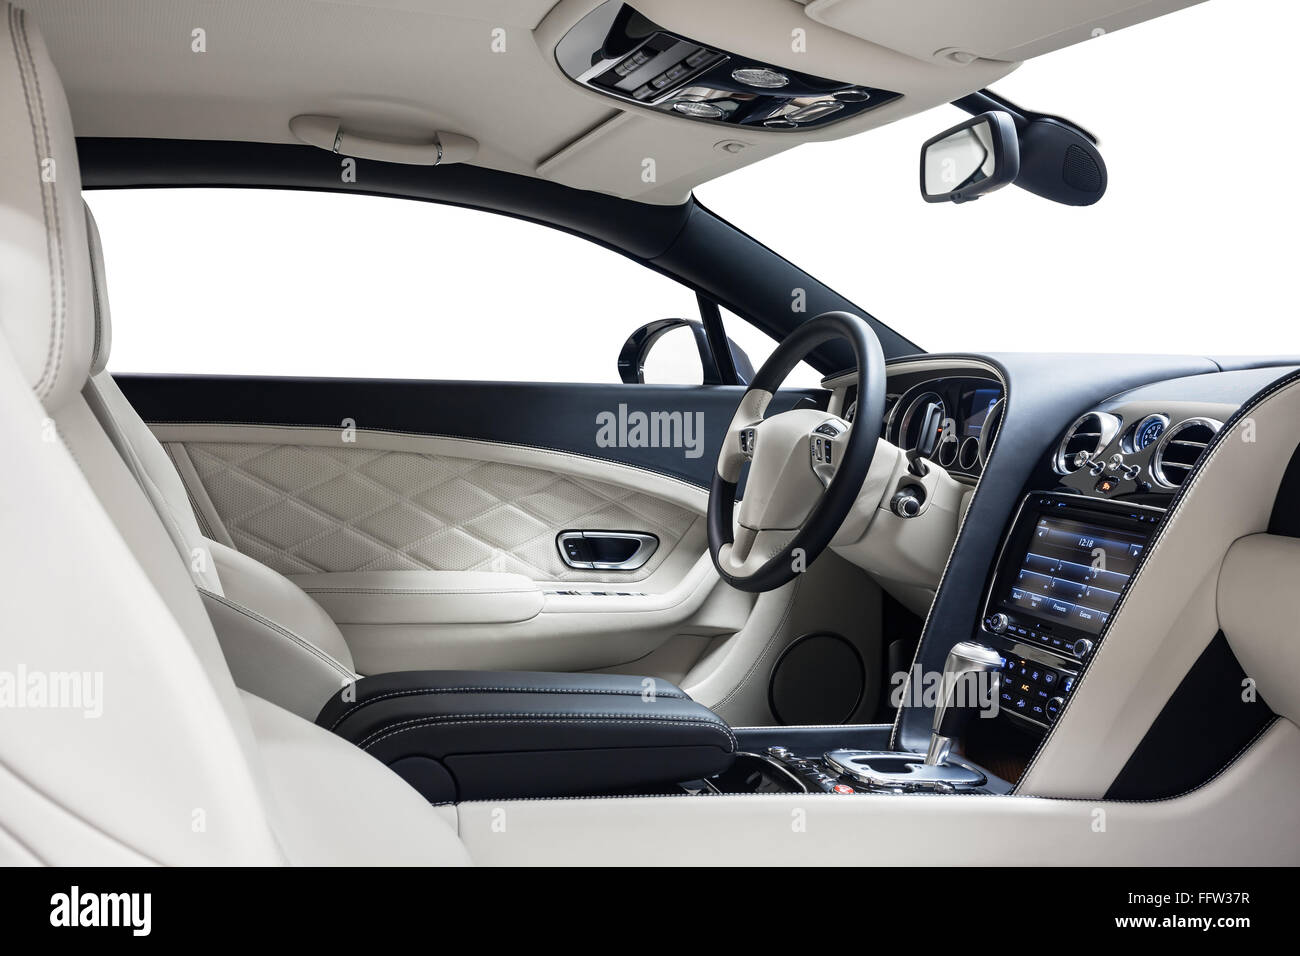 Car interior luxury. Steering wheel & dashboard. Cleaning and detailing car service. - Stock Image